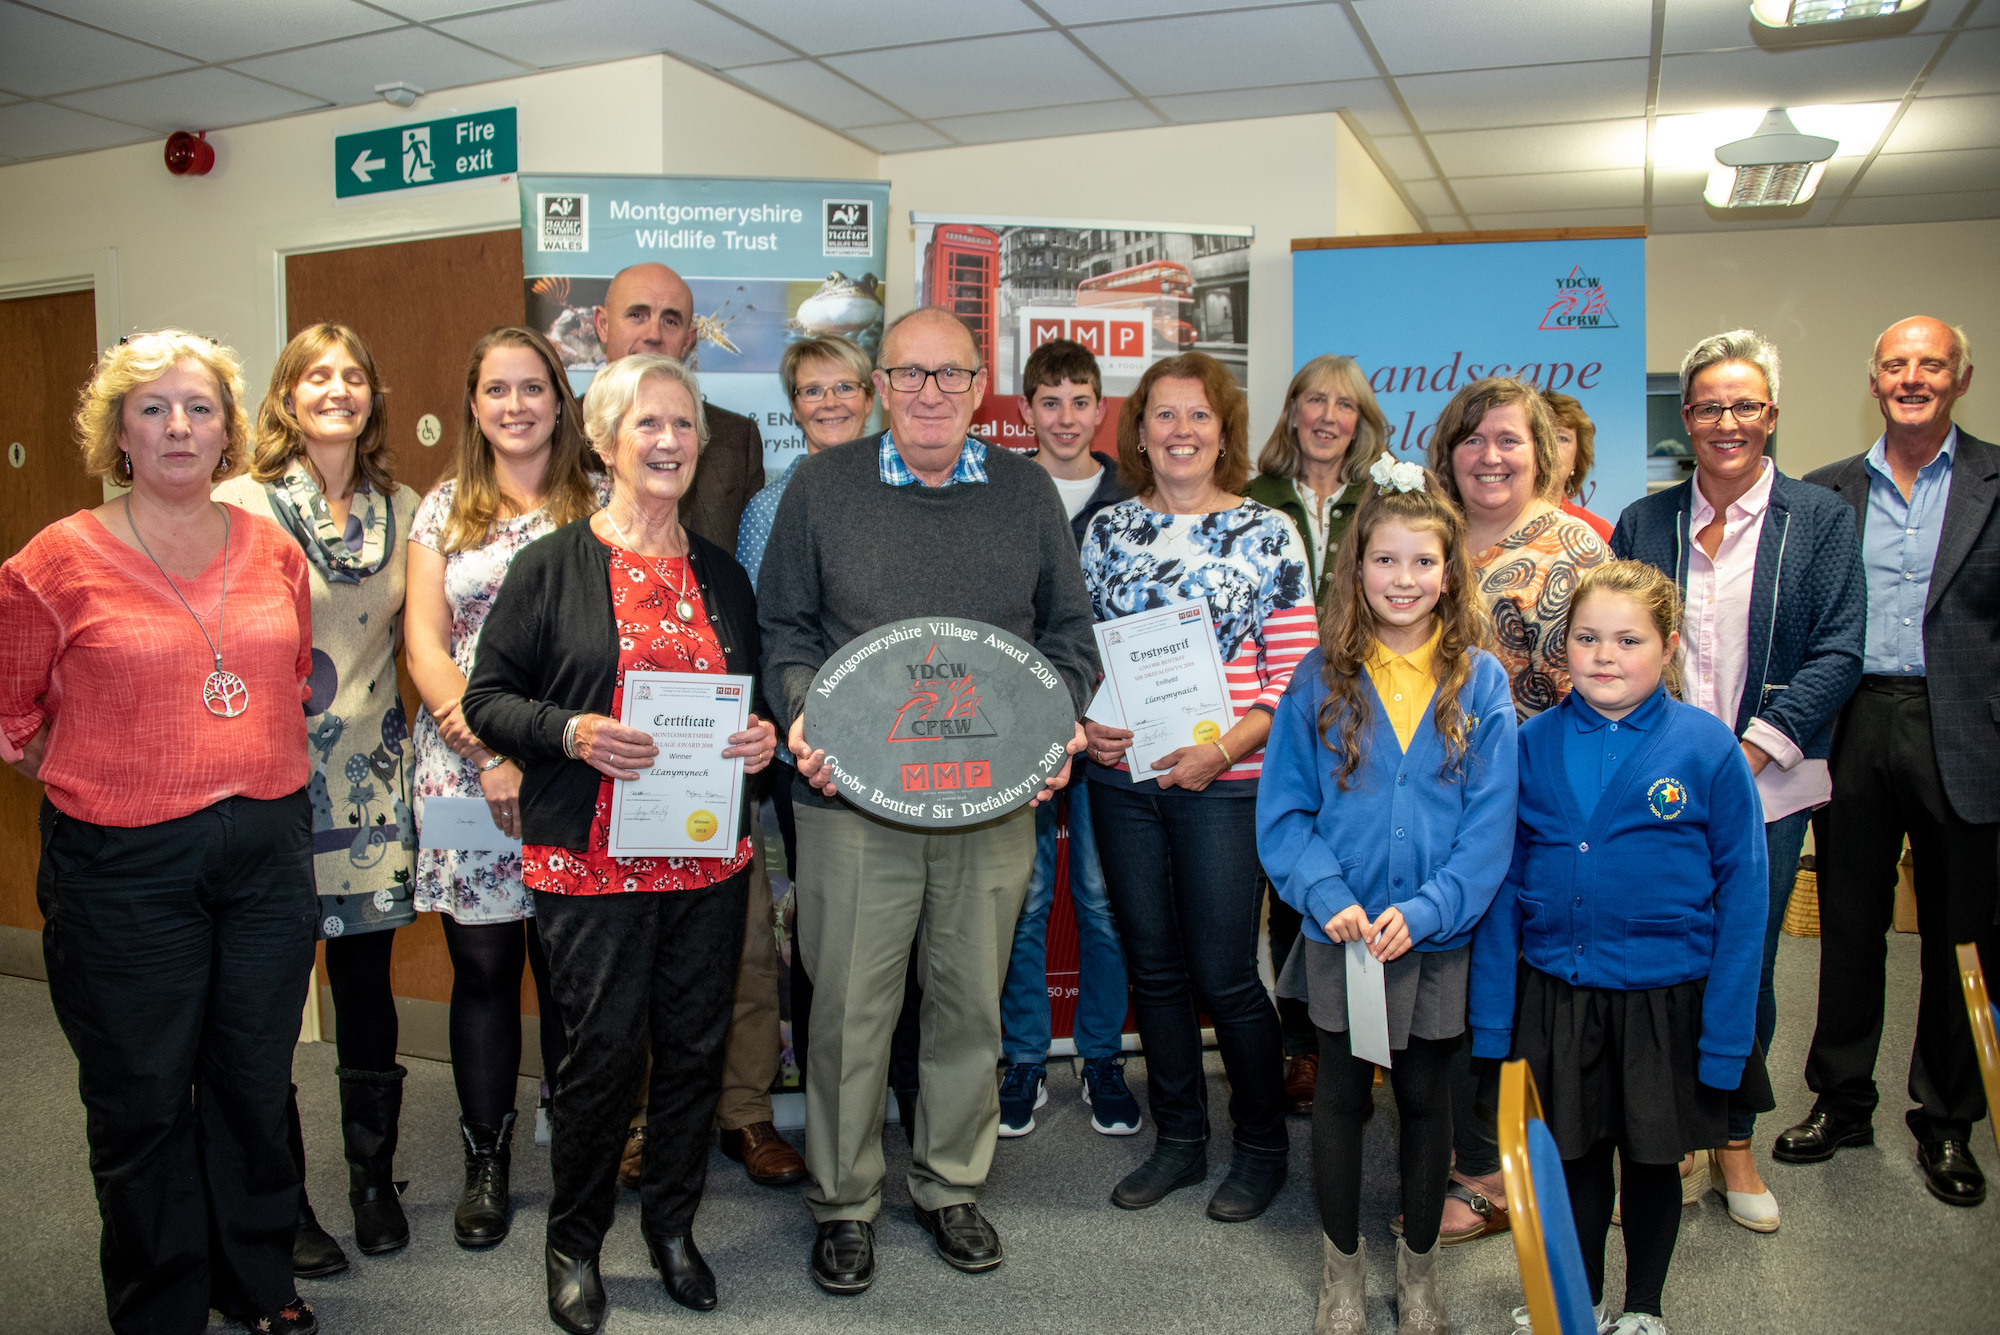 Llanymynech crowned Montgomeryshire Village of the Year